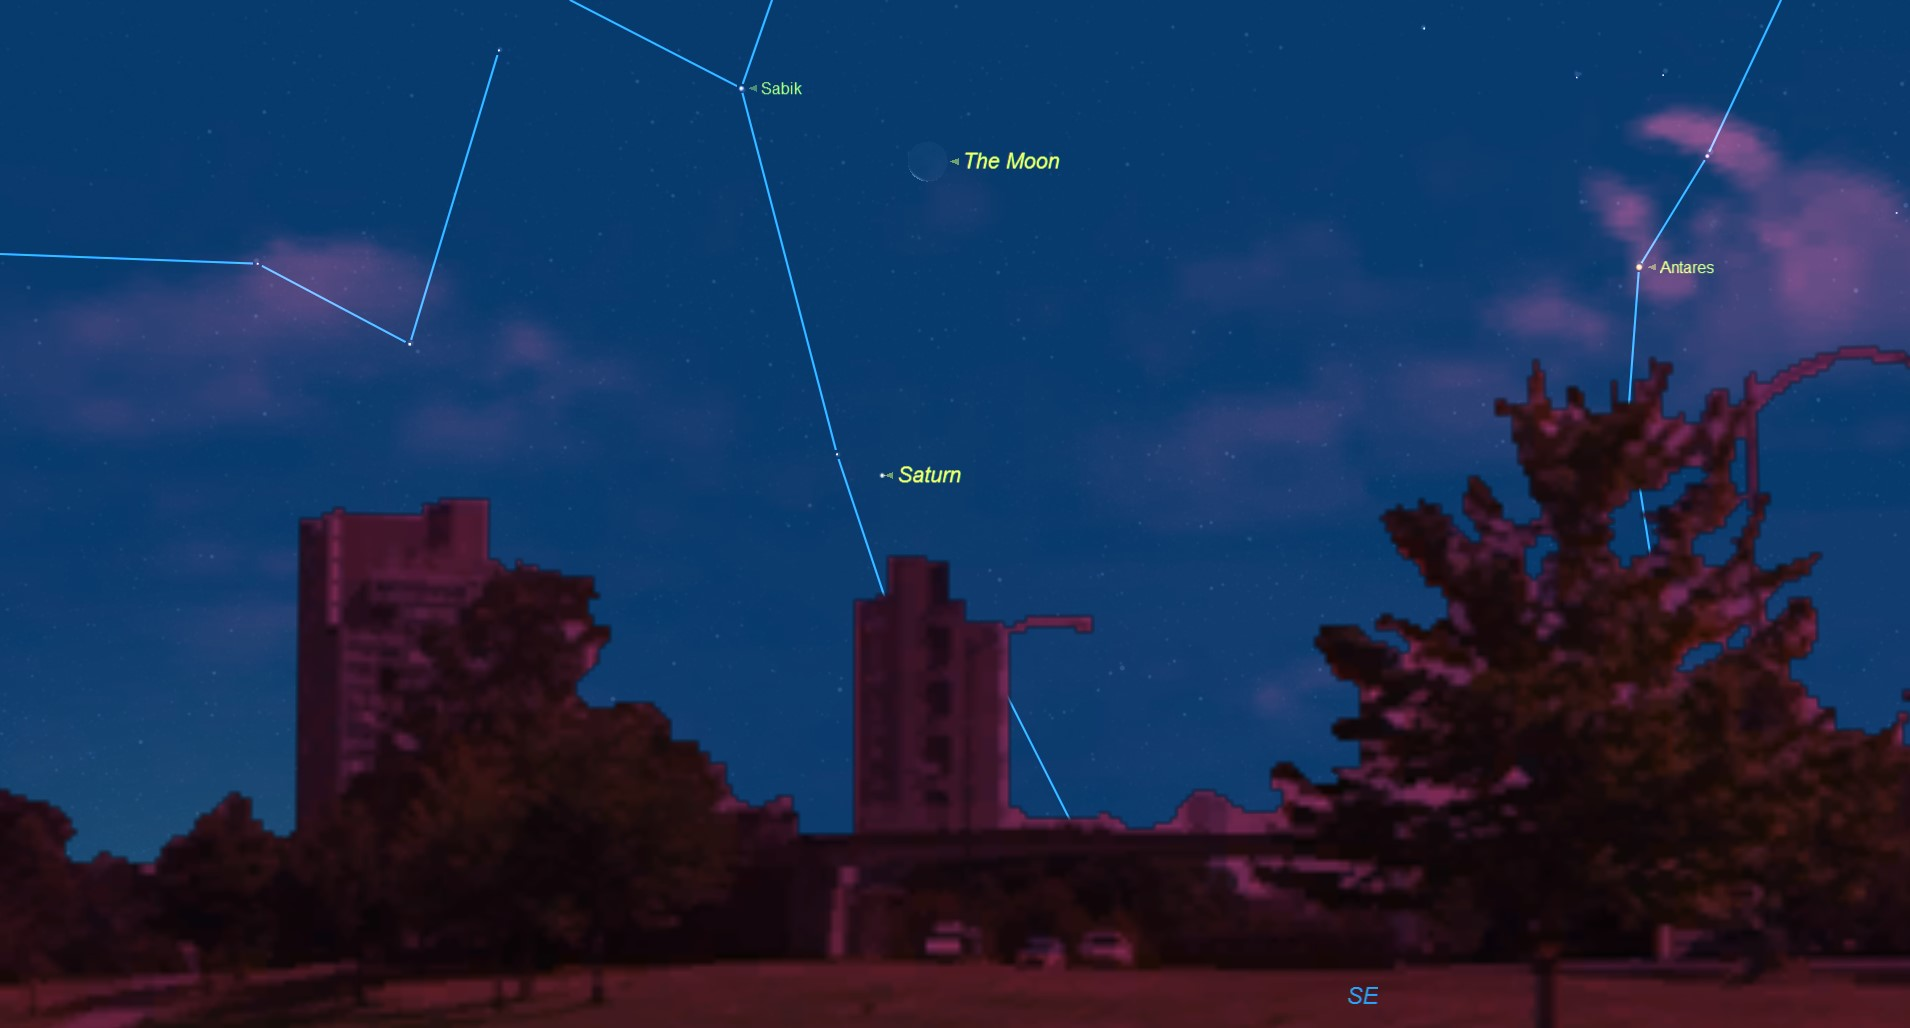 How to See Saturn and the Moon in Tuesday's Pre-dawn Sky